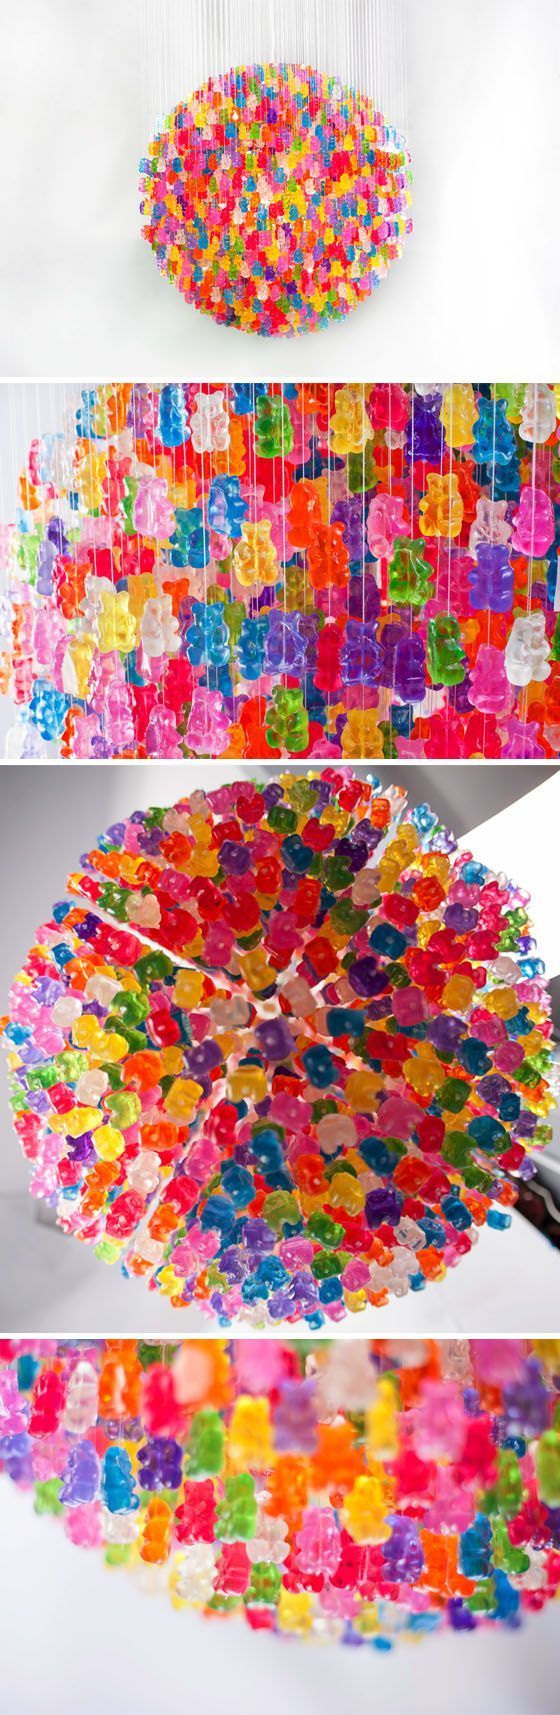 The Candelier by Kevin Champeny made out of 3000 acrylic gummy bears. Neat!